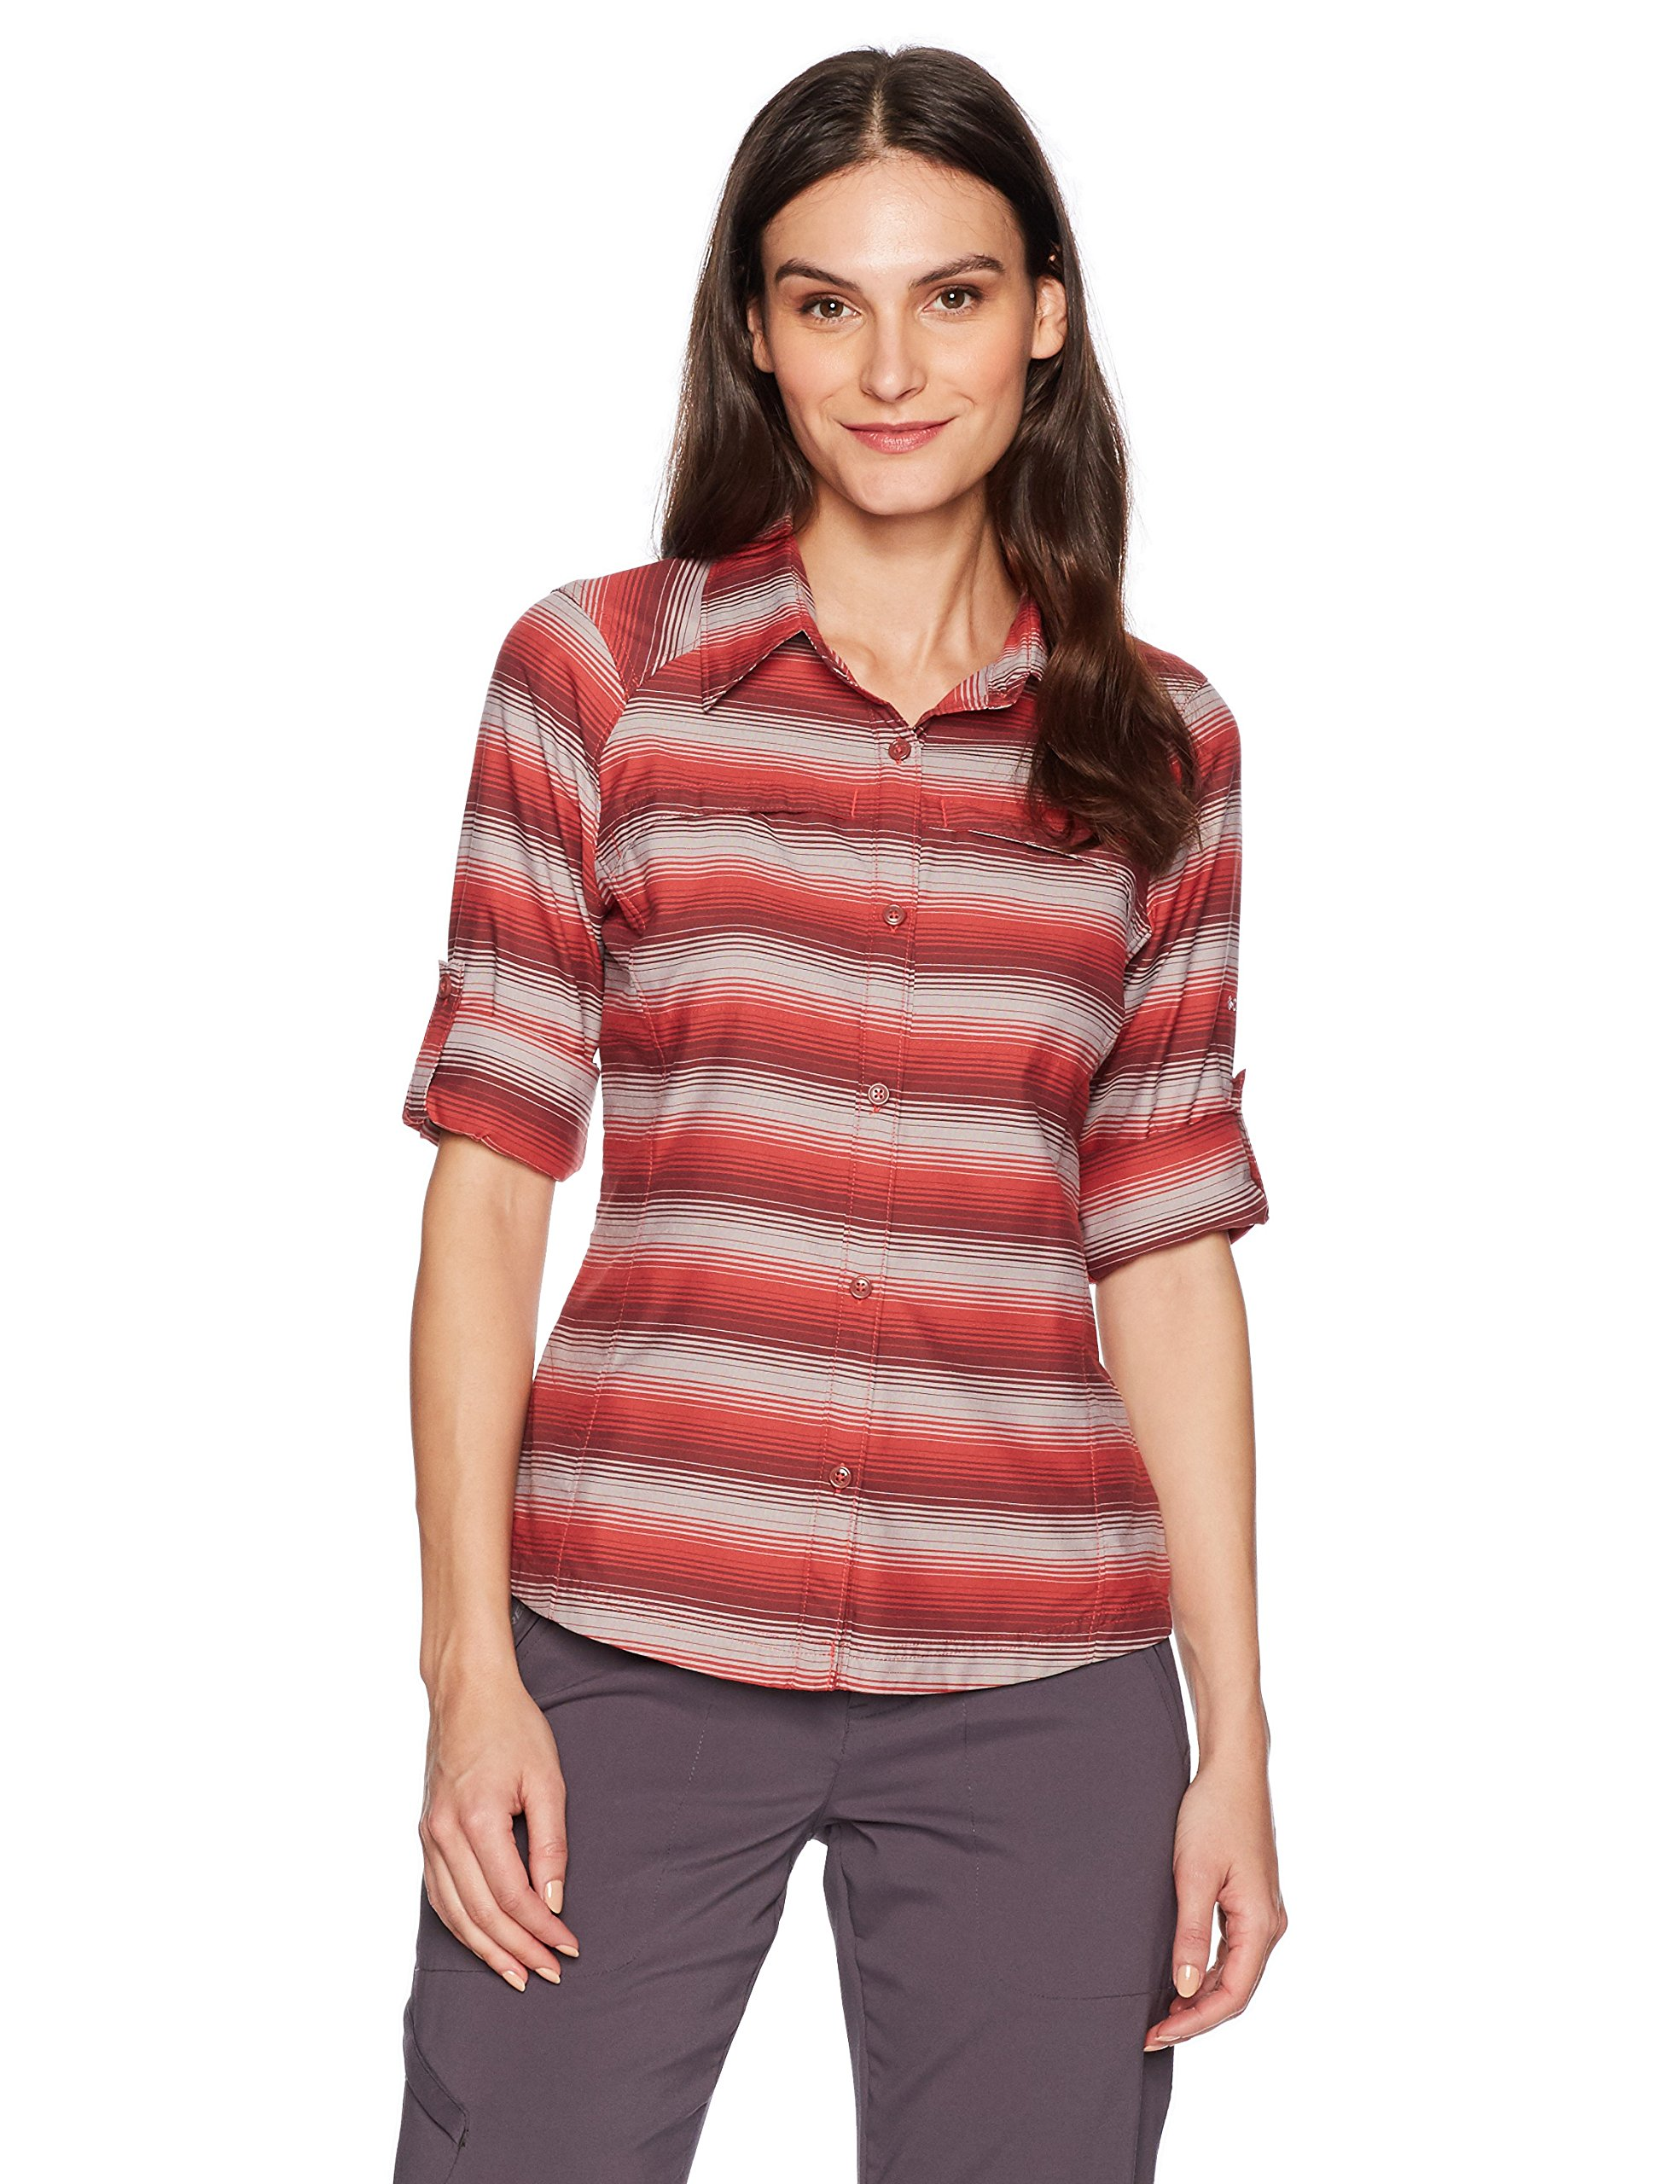 Columbia Silver Ridge Plaid Long Sleeve Shirt, Red Coral Ombre Stripe, Large by Columbia